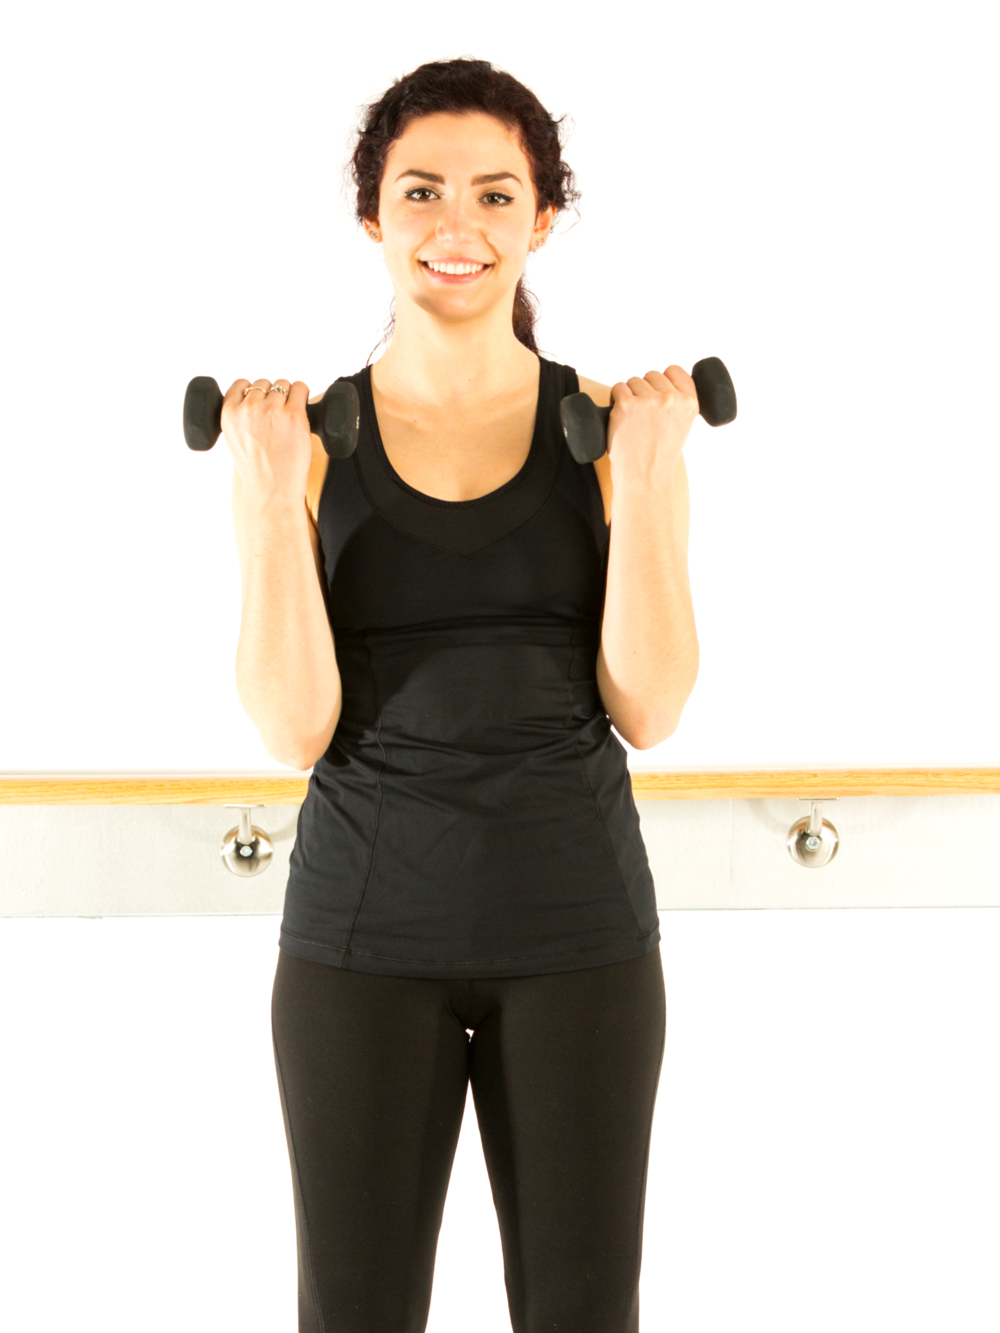 Holding elbows bent with little to no movement is an isometric contraction for the muscles.